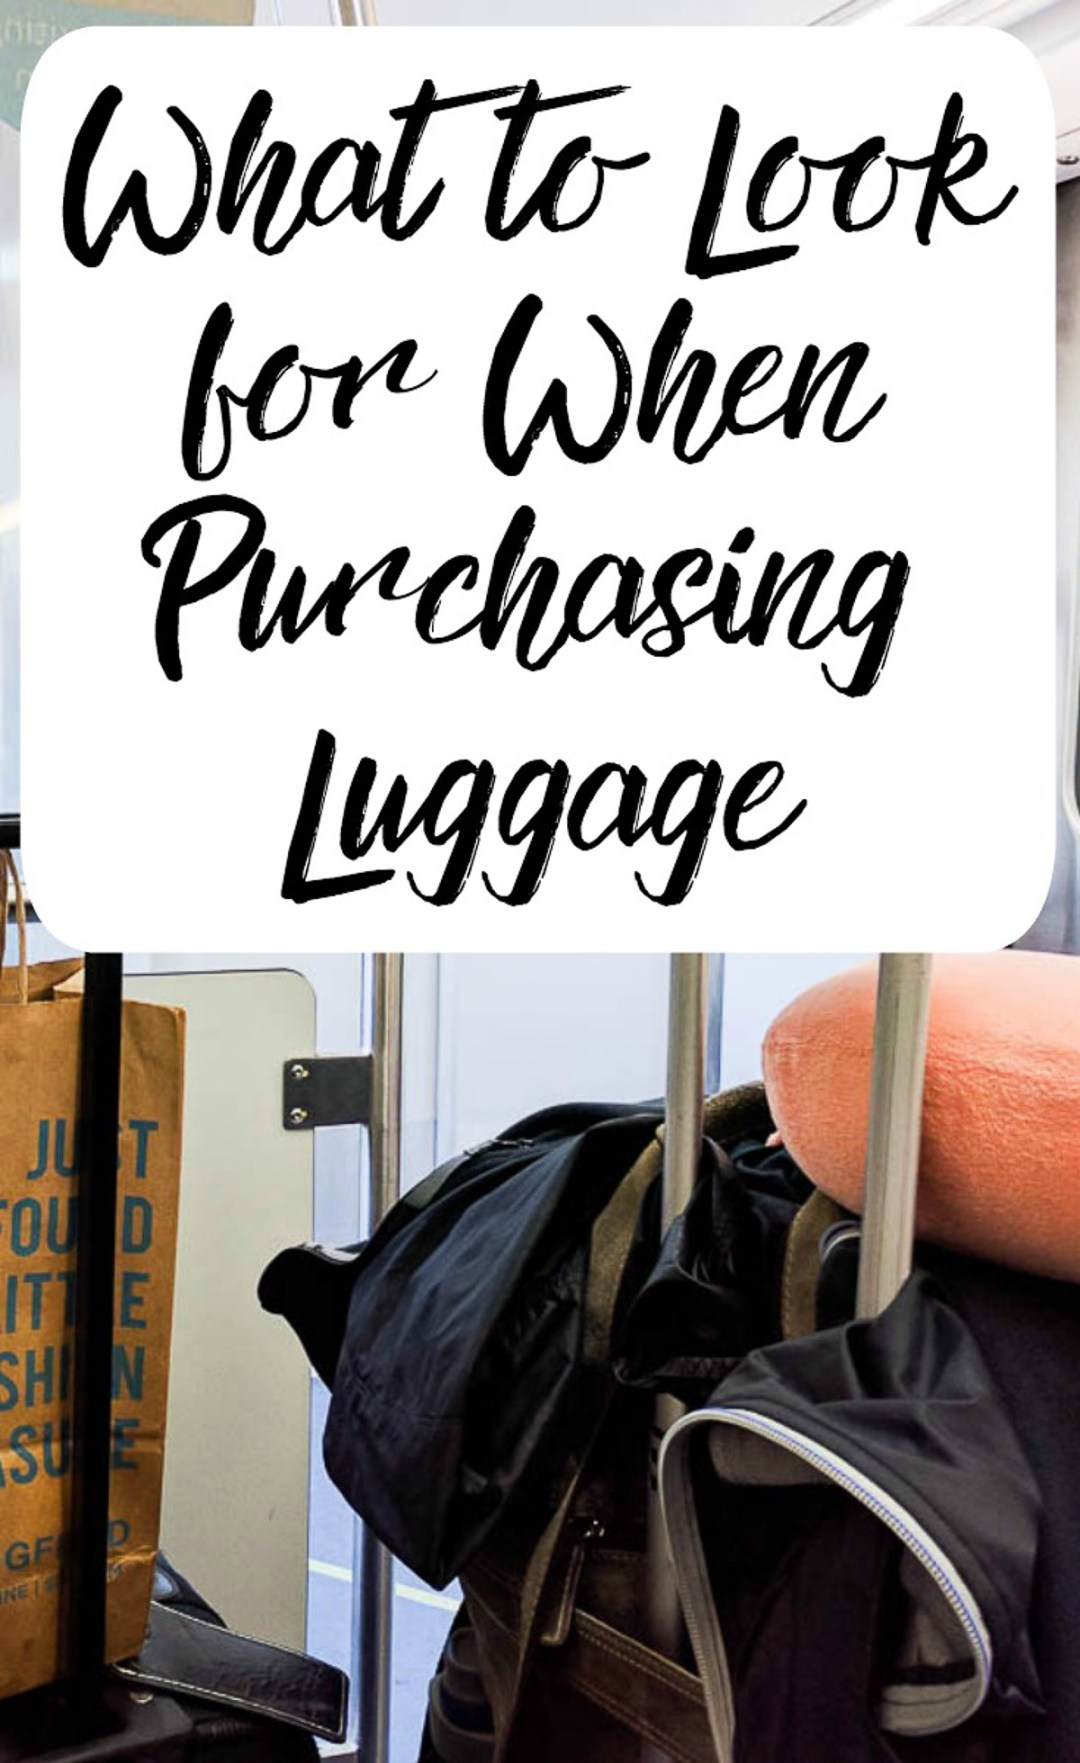 What to Look For When Purchasing Luggage